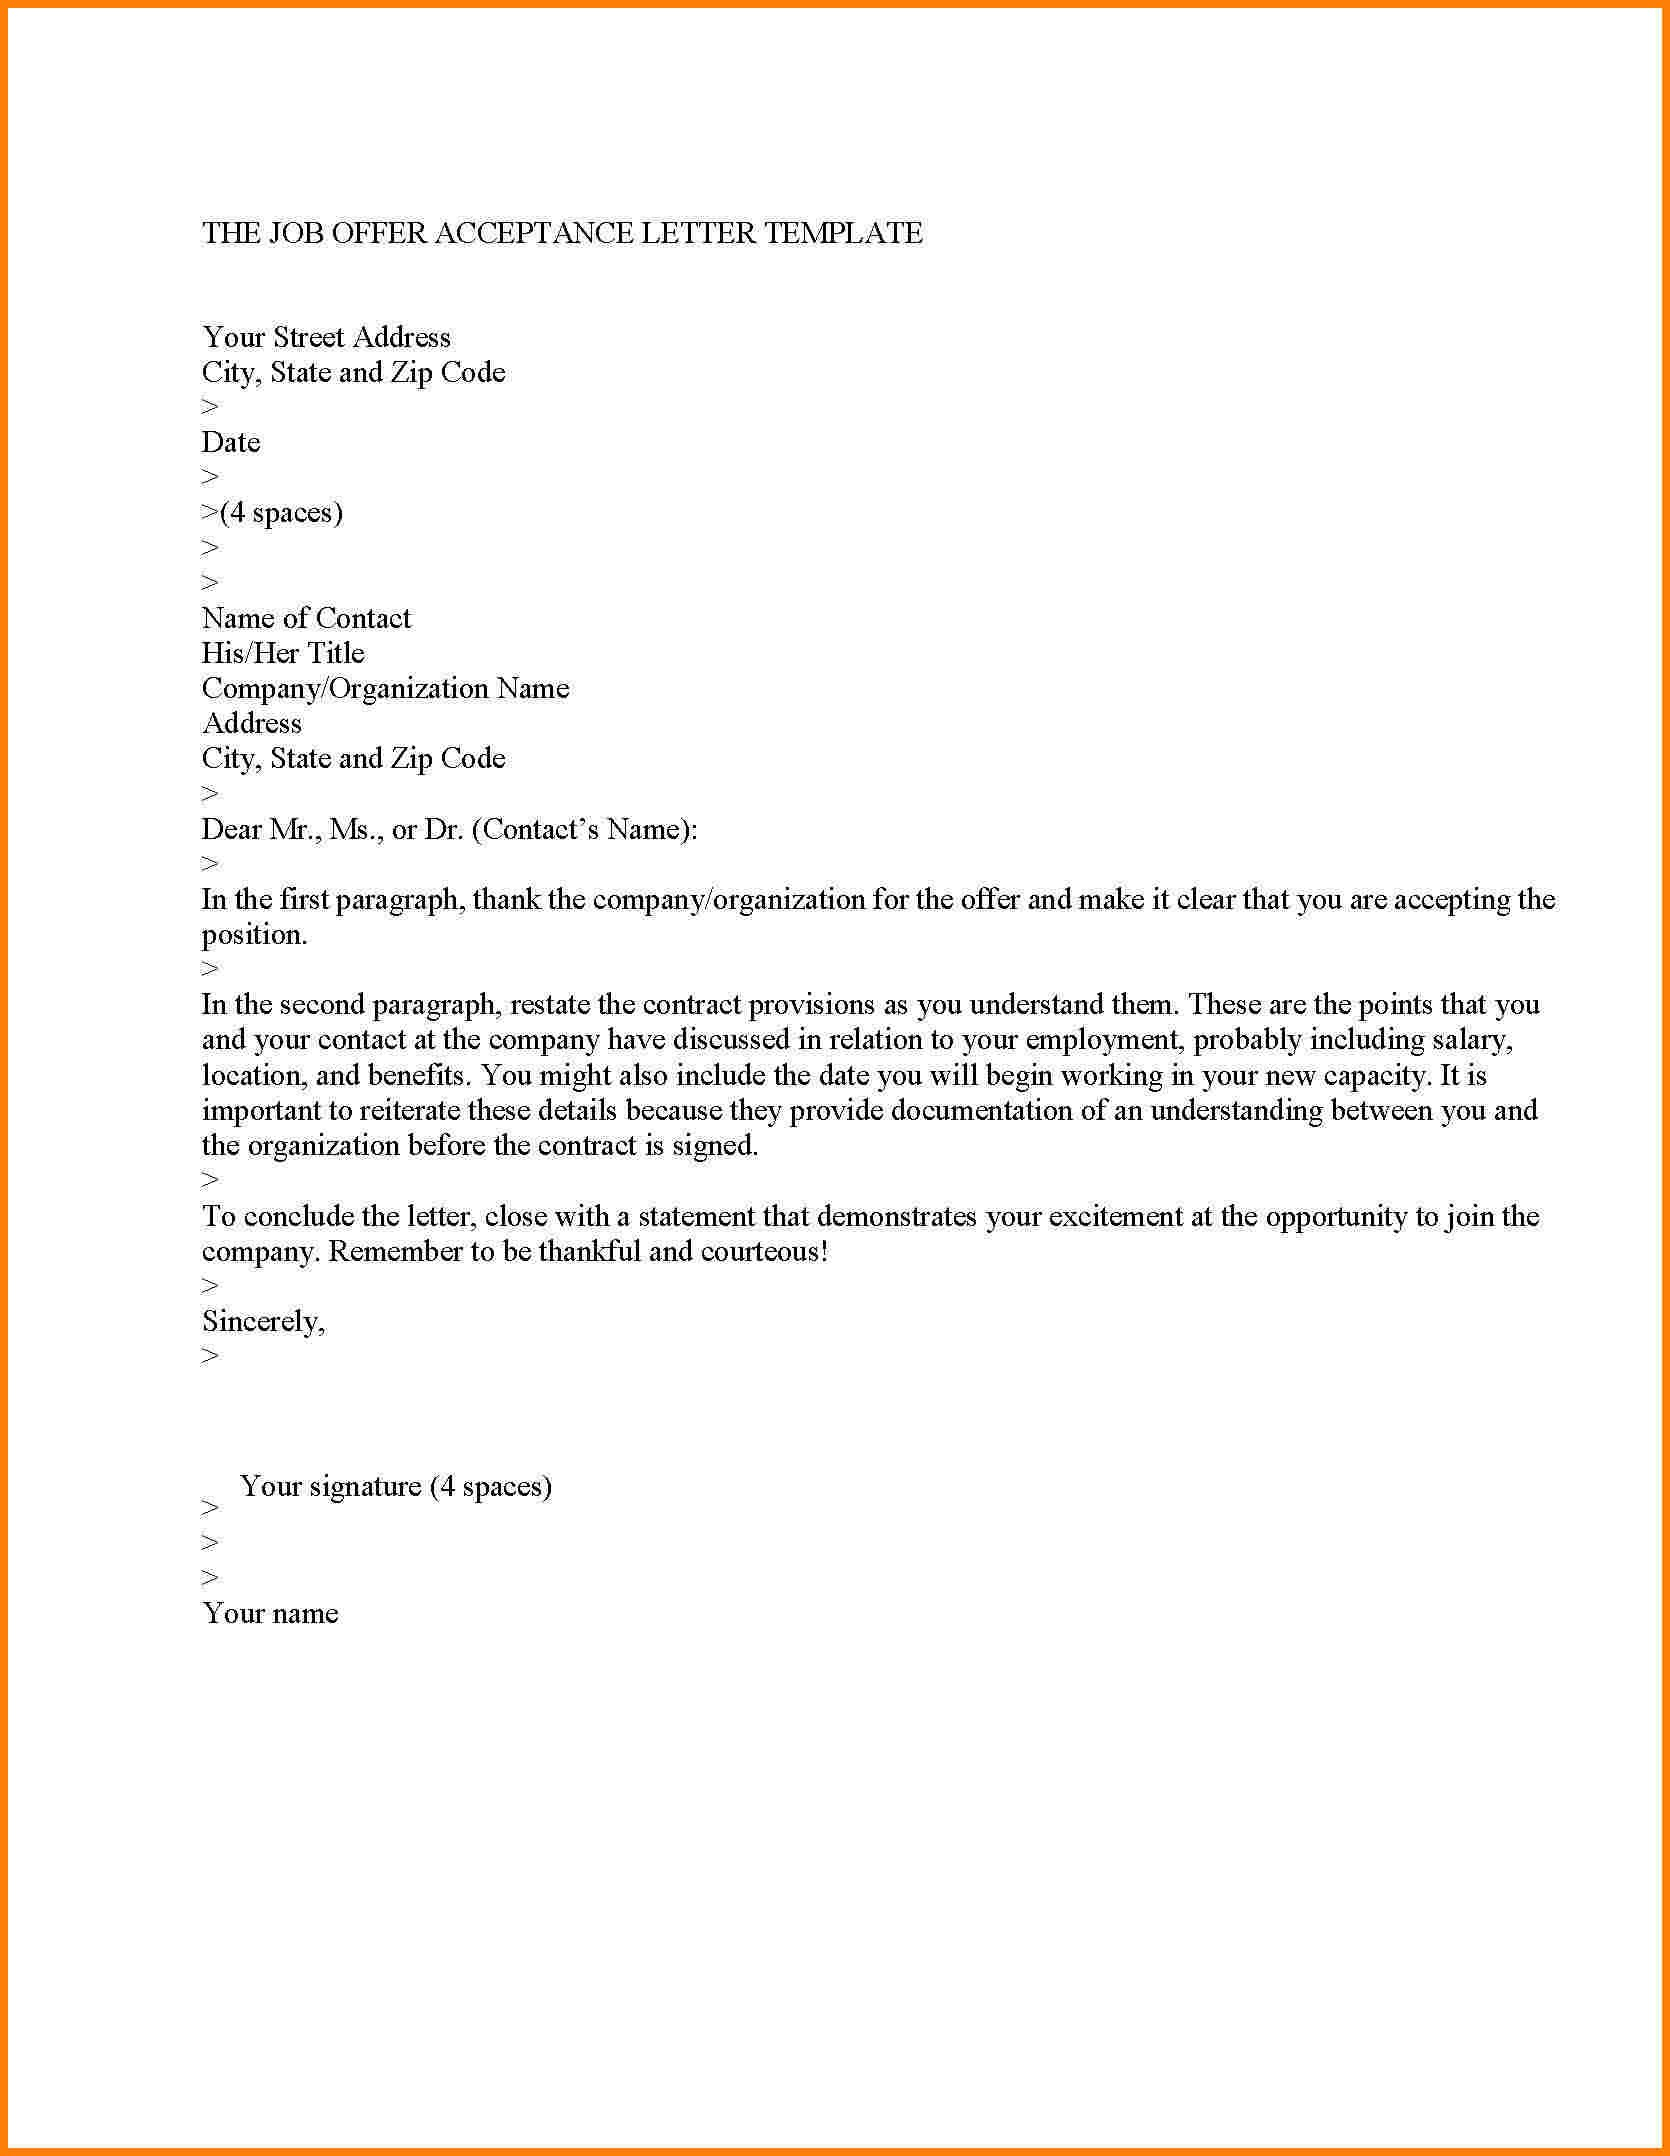 Job Offer Letter Template Pdf - Ideas Of Offer Letter Templates In Doc 50 Free Word Pdf Documents